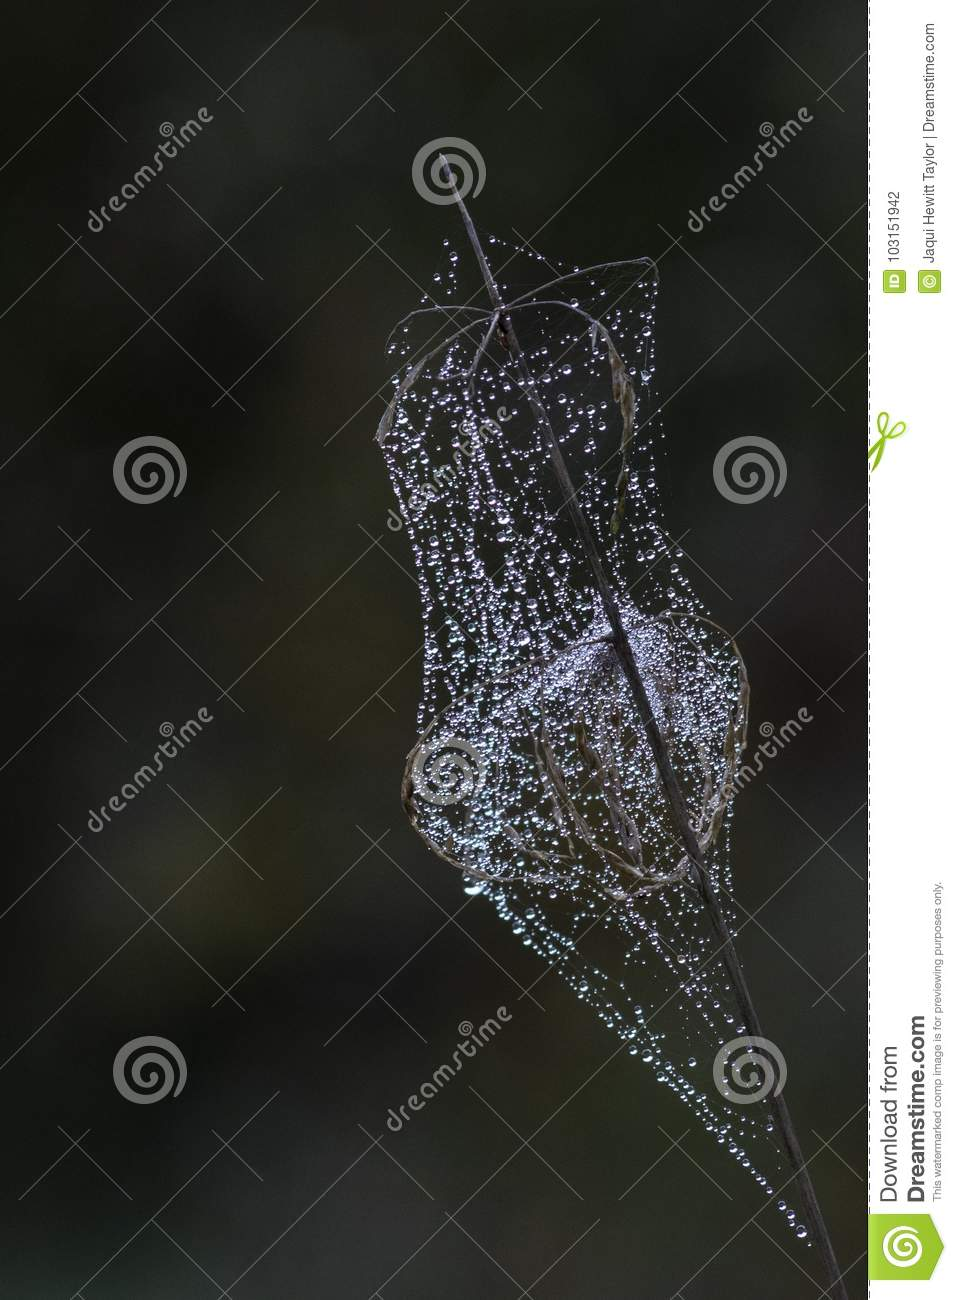 A spider web on a seed head